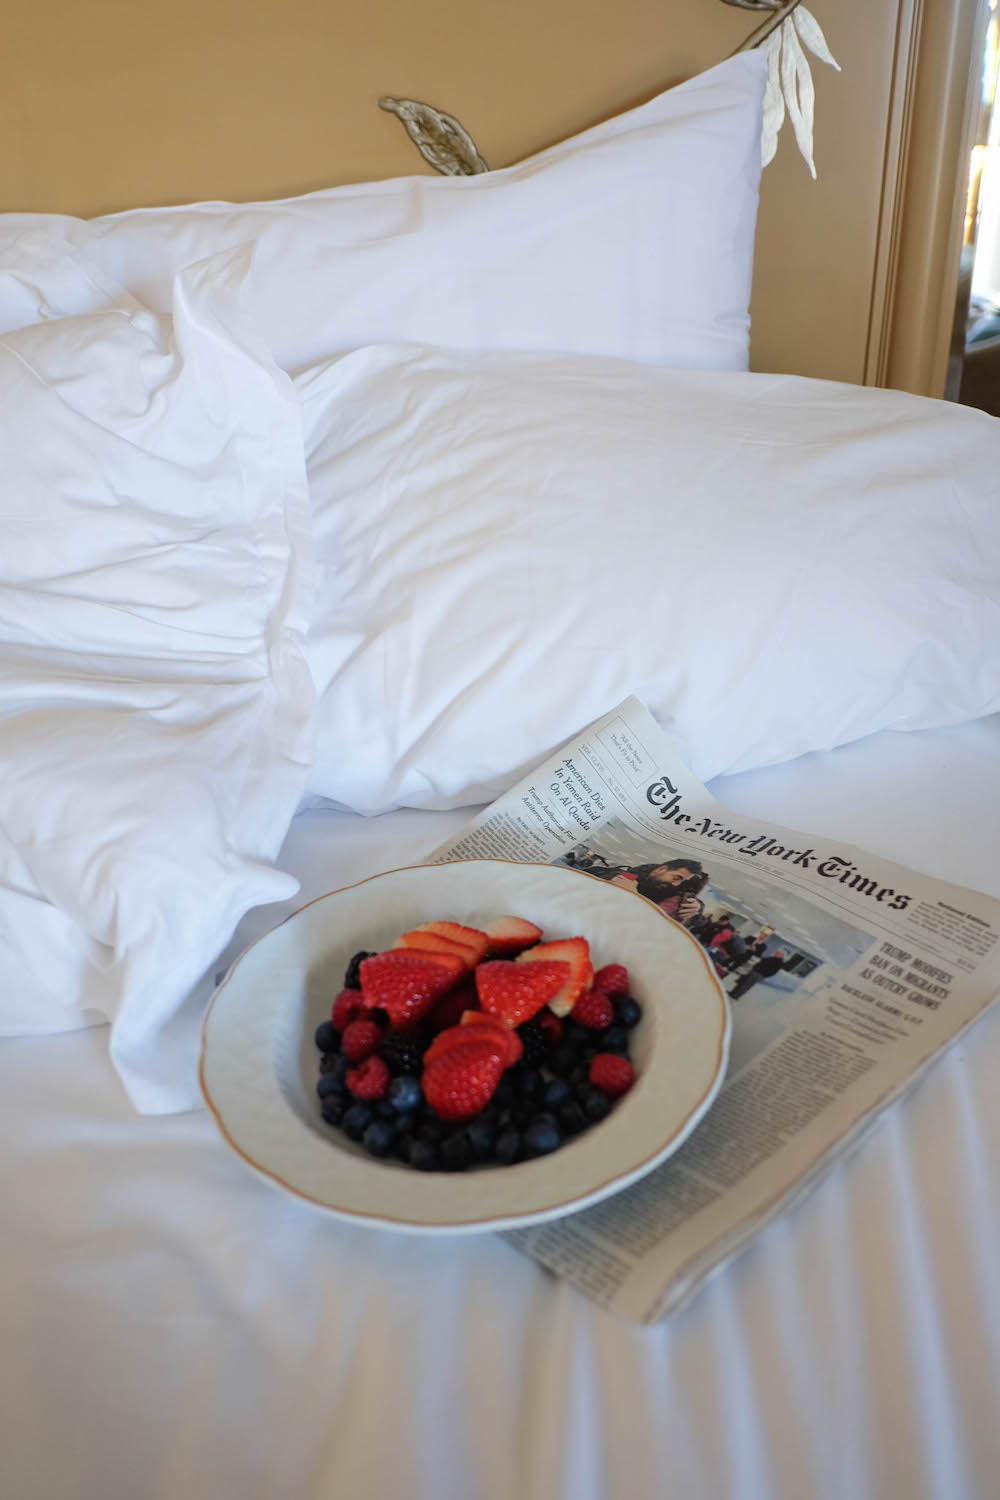 berries and the new york times